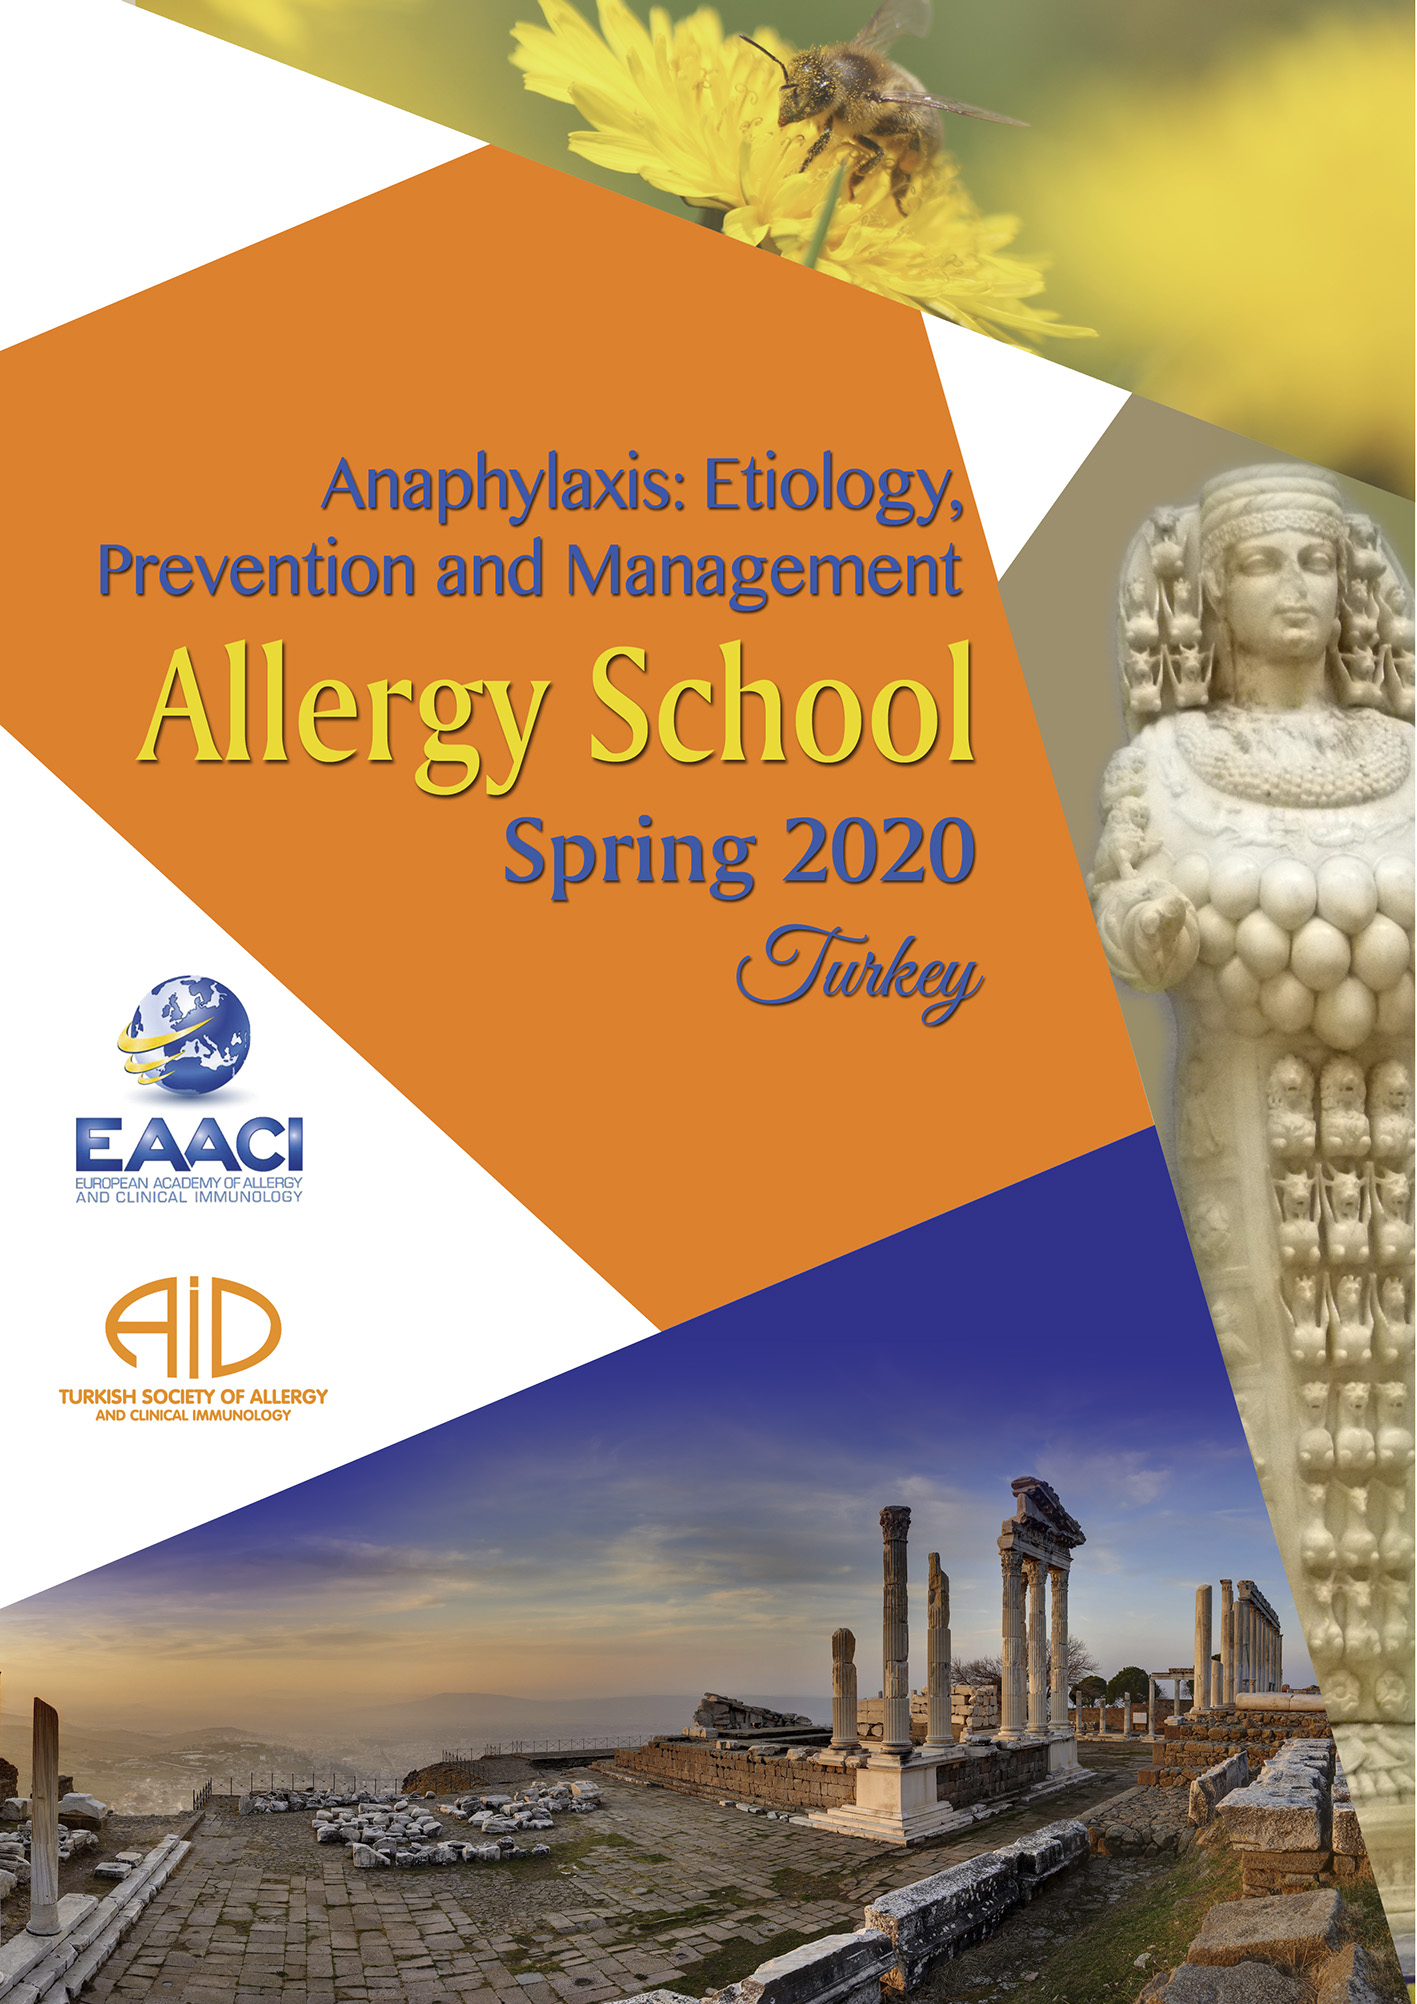 allergy school 2020 İzmir Turkey